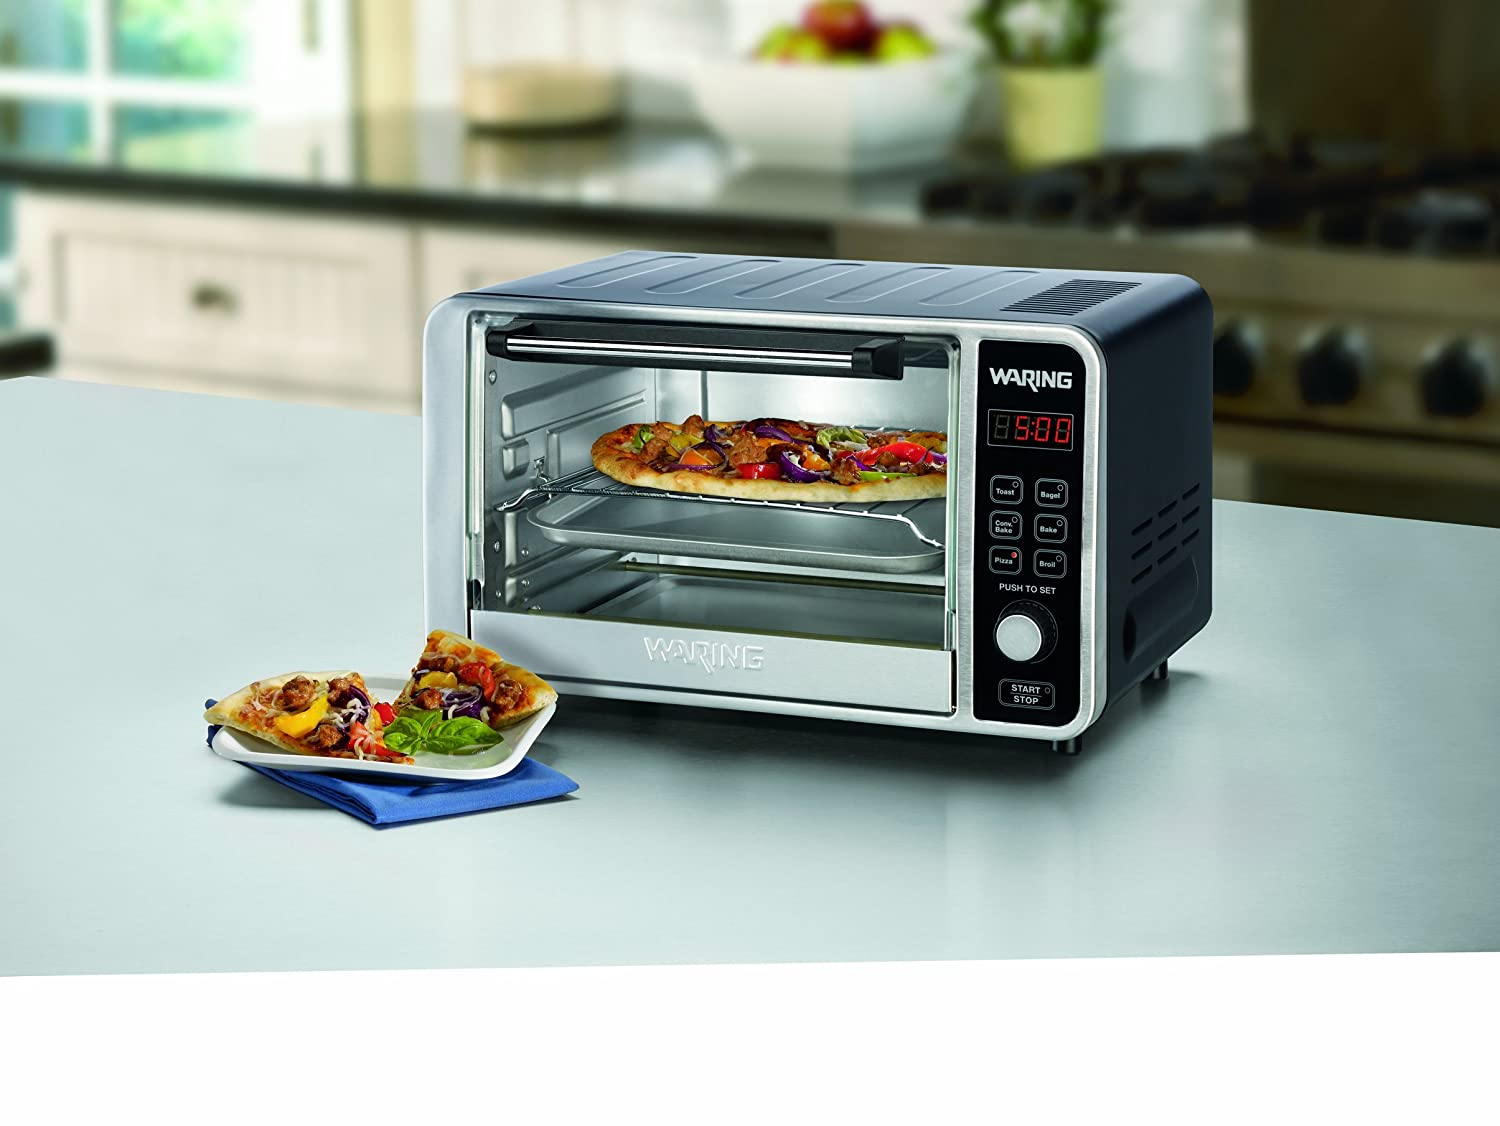 Amazon.com: Waring Stainless Steel Digital Convection Toaster Oven ...